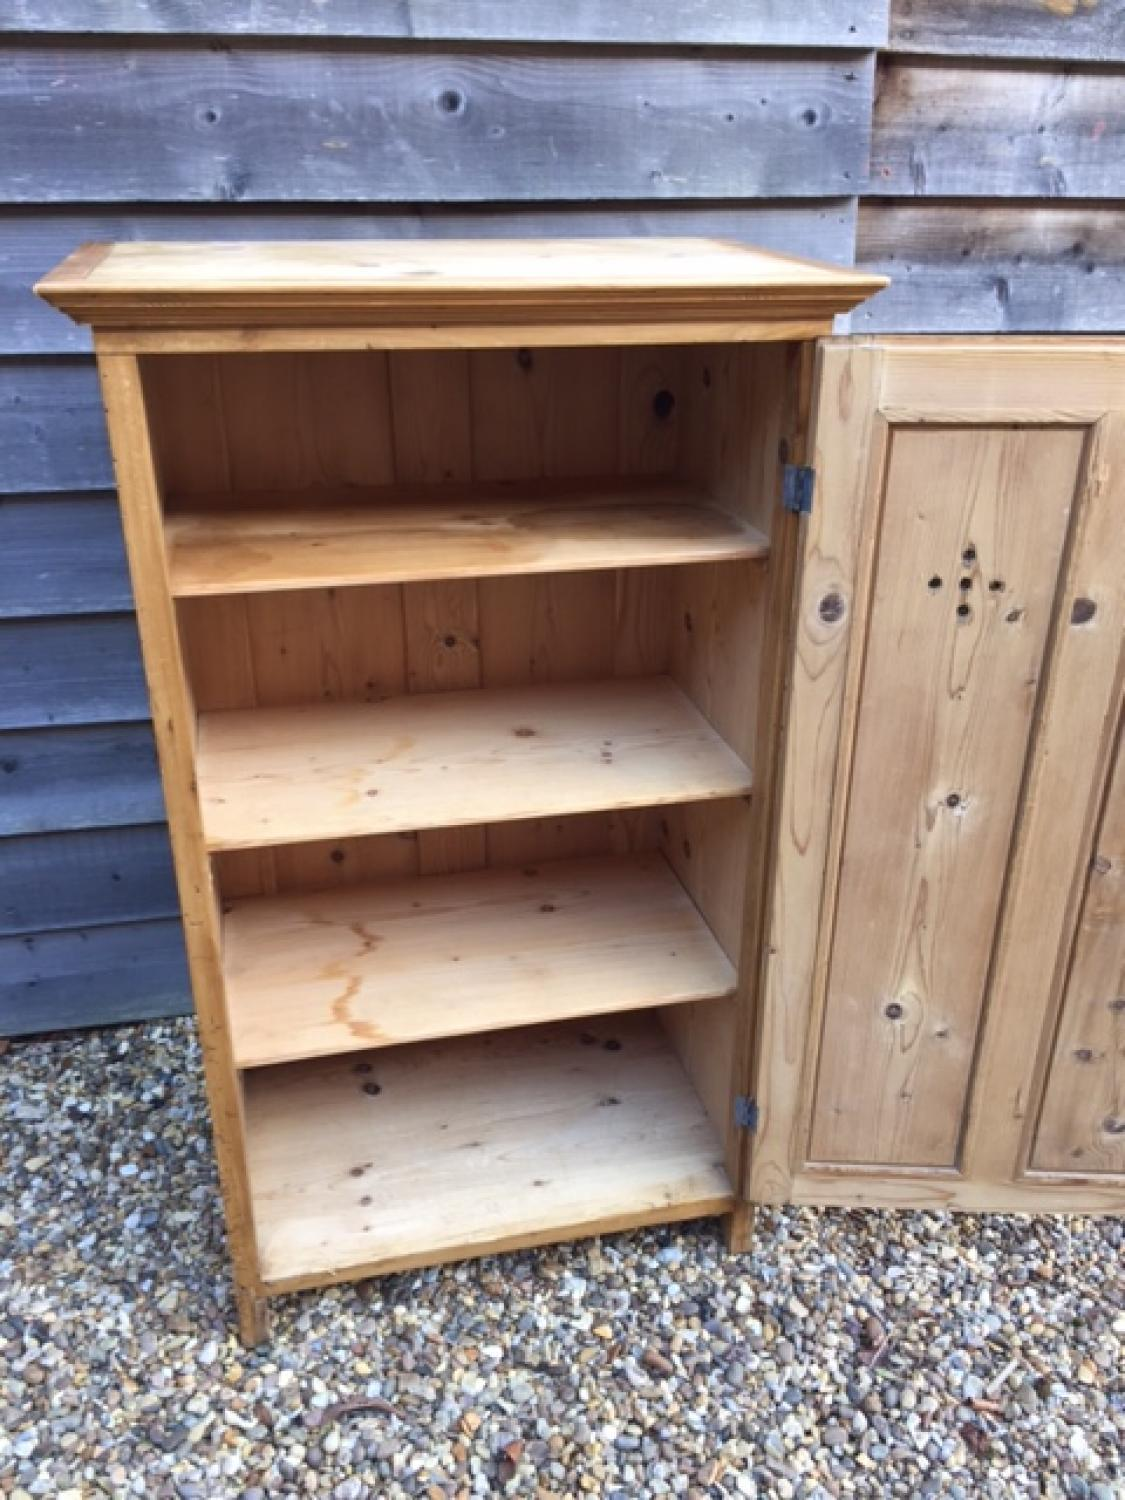 ... Small Antique Pine Larder Cupboard - picture 3 - Small Antique Pine Larder Cupboard In FURNITURE & BOXES